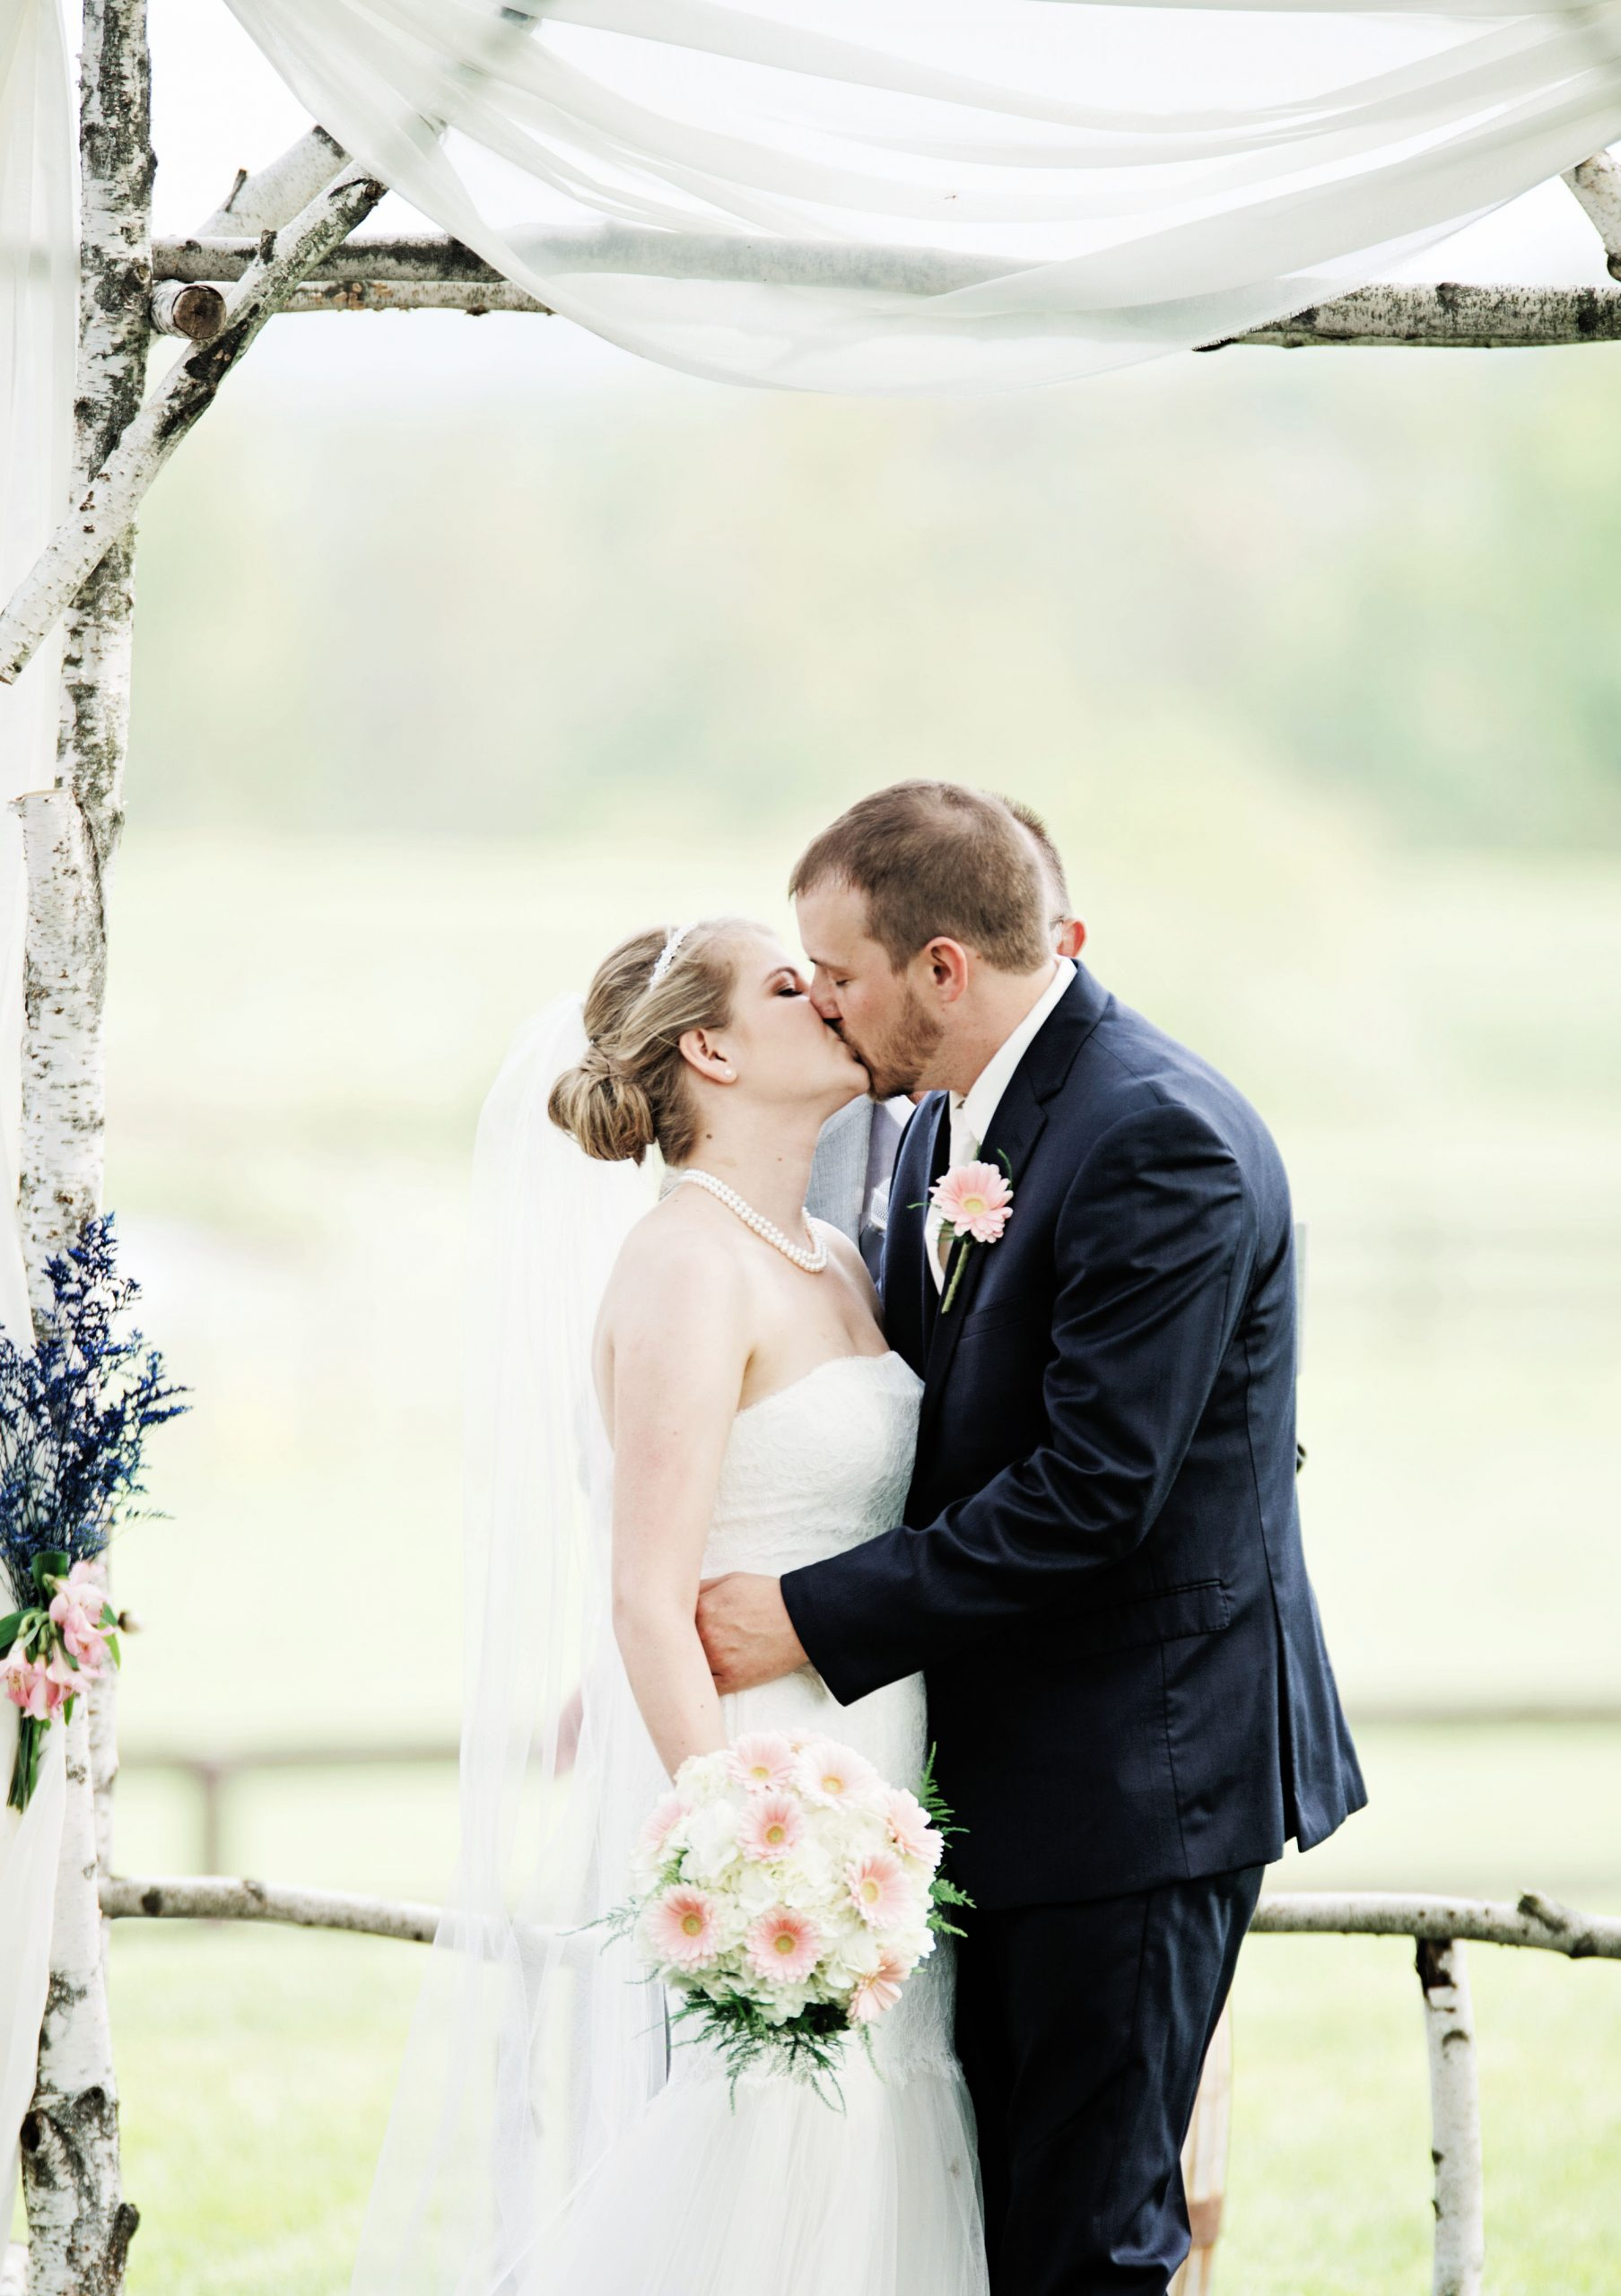 They do! The couple kisses for their first time as a married couple at Lakeview Farms in York, PA. Photographed by Lovefusion Photography. Featured in Dream Weddings.